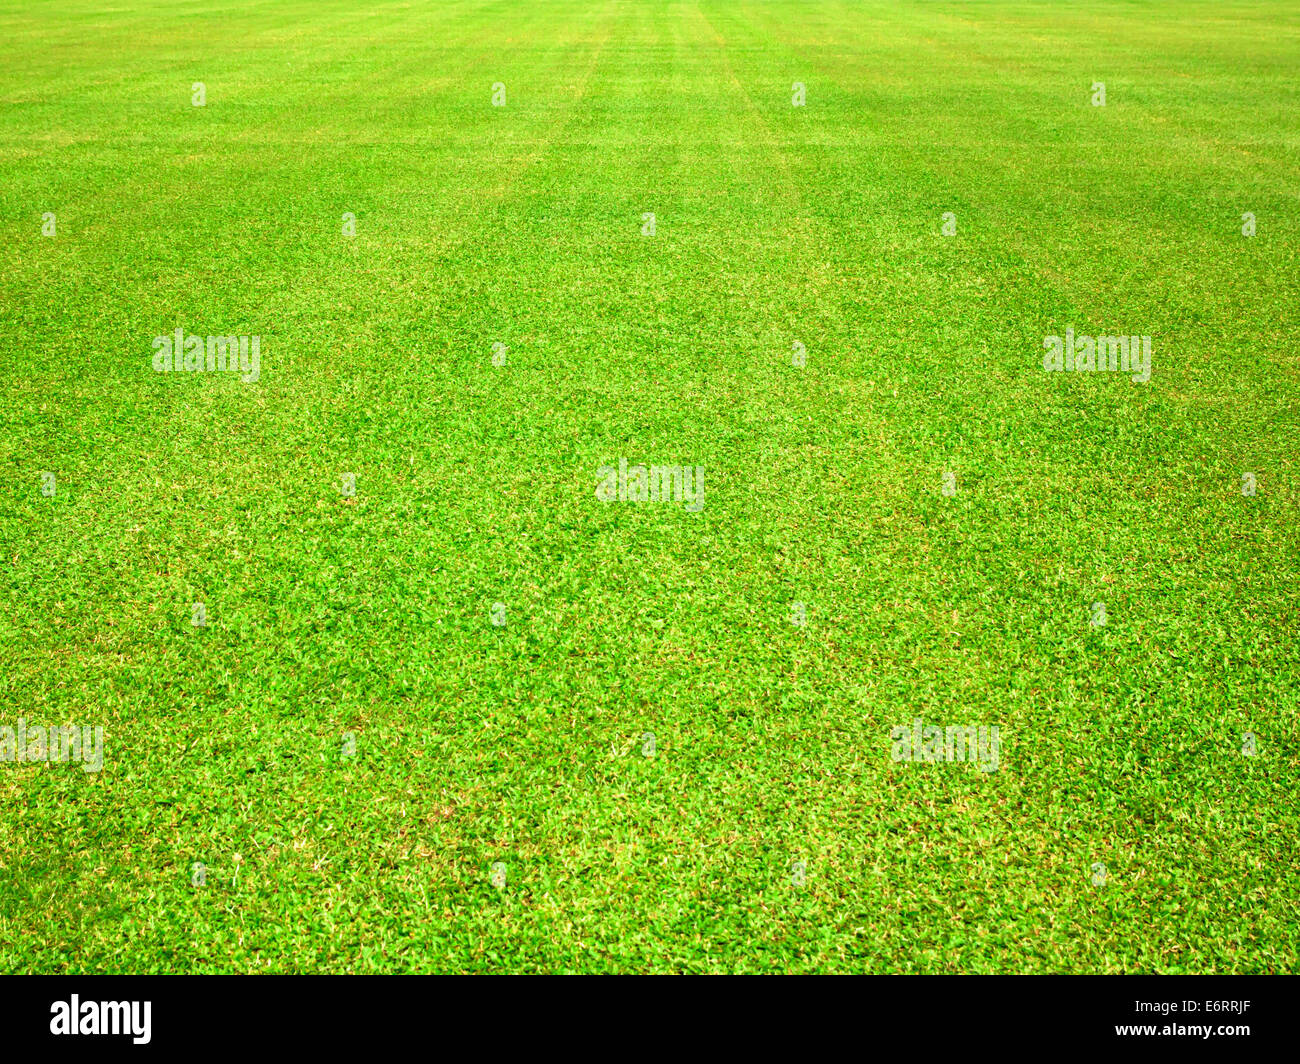 Golf green grass background texture nature leaves. - Stock Image